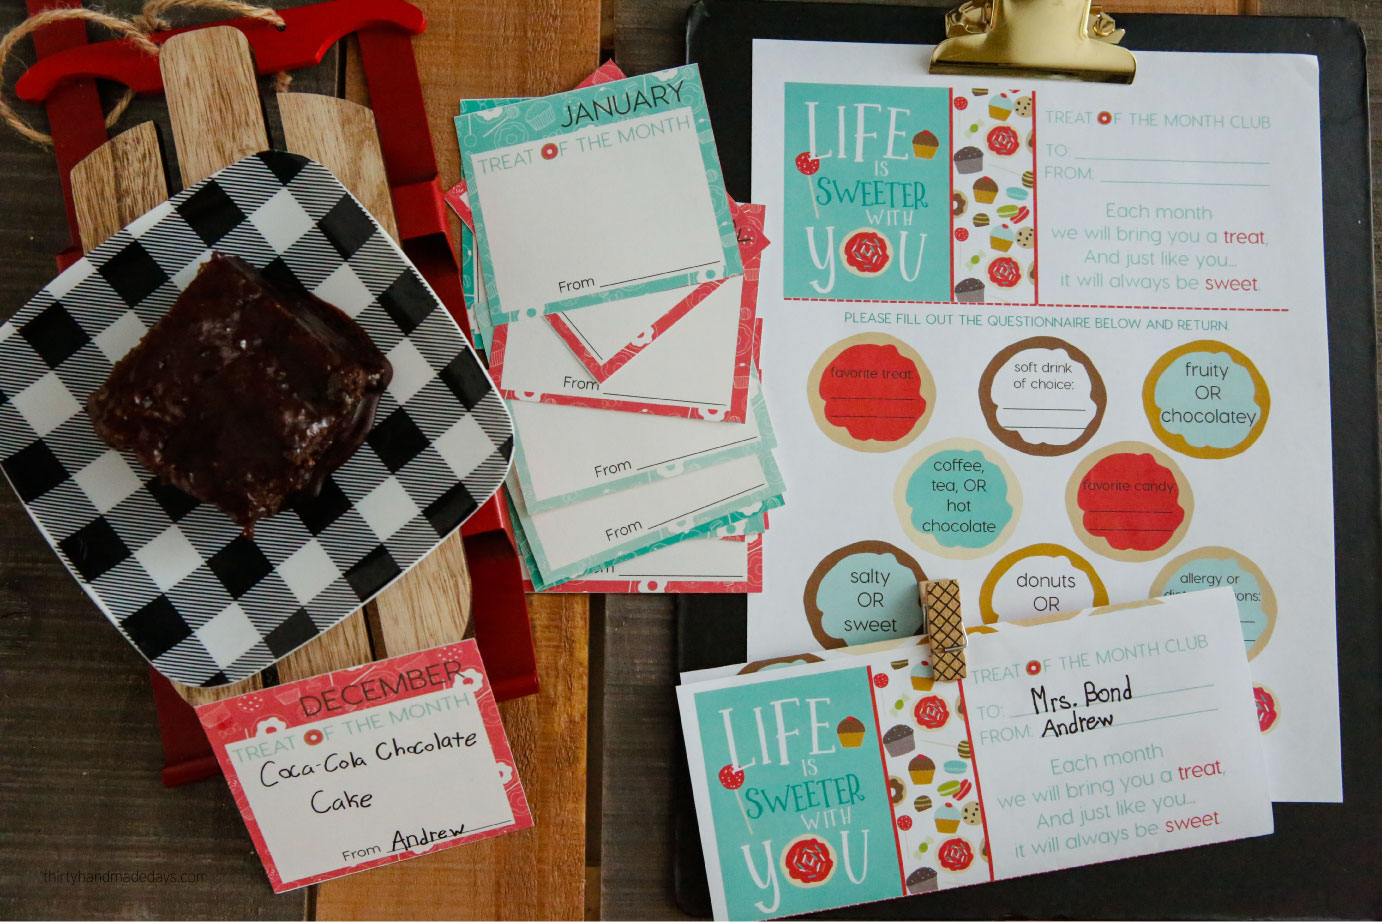 Treat of the Month Club - a sweet gift idea to celebrate someone throughout the year. Perfect for the holidays and Christmas! via www.thirtyhandmadedays.com